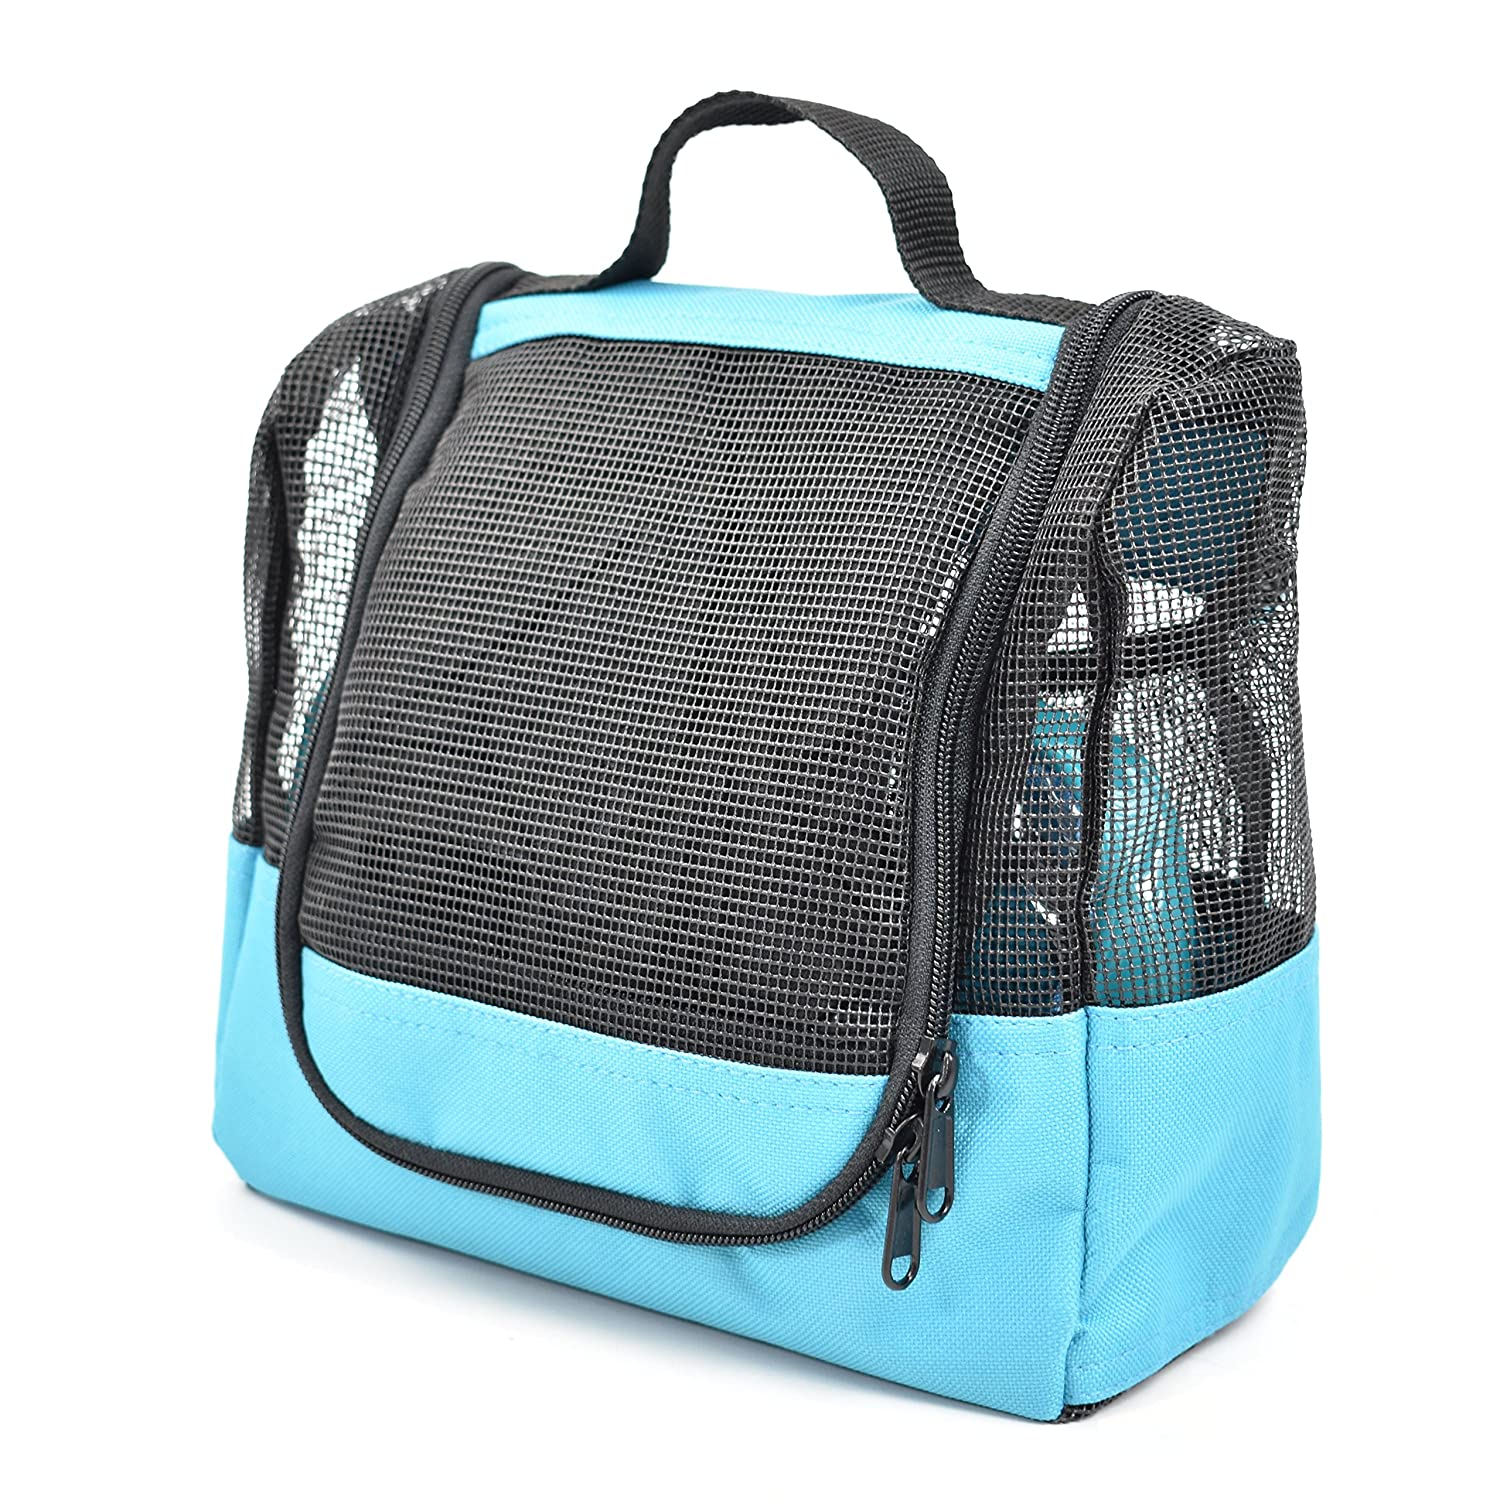 Amazon.com: Shower Caddy Case Organizer Tote to Hang in the Shower ...